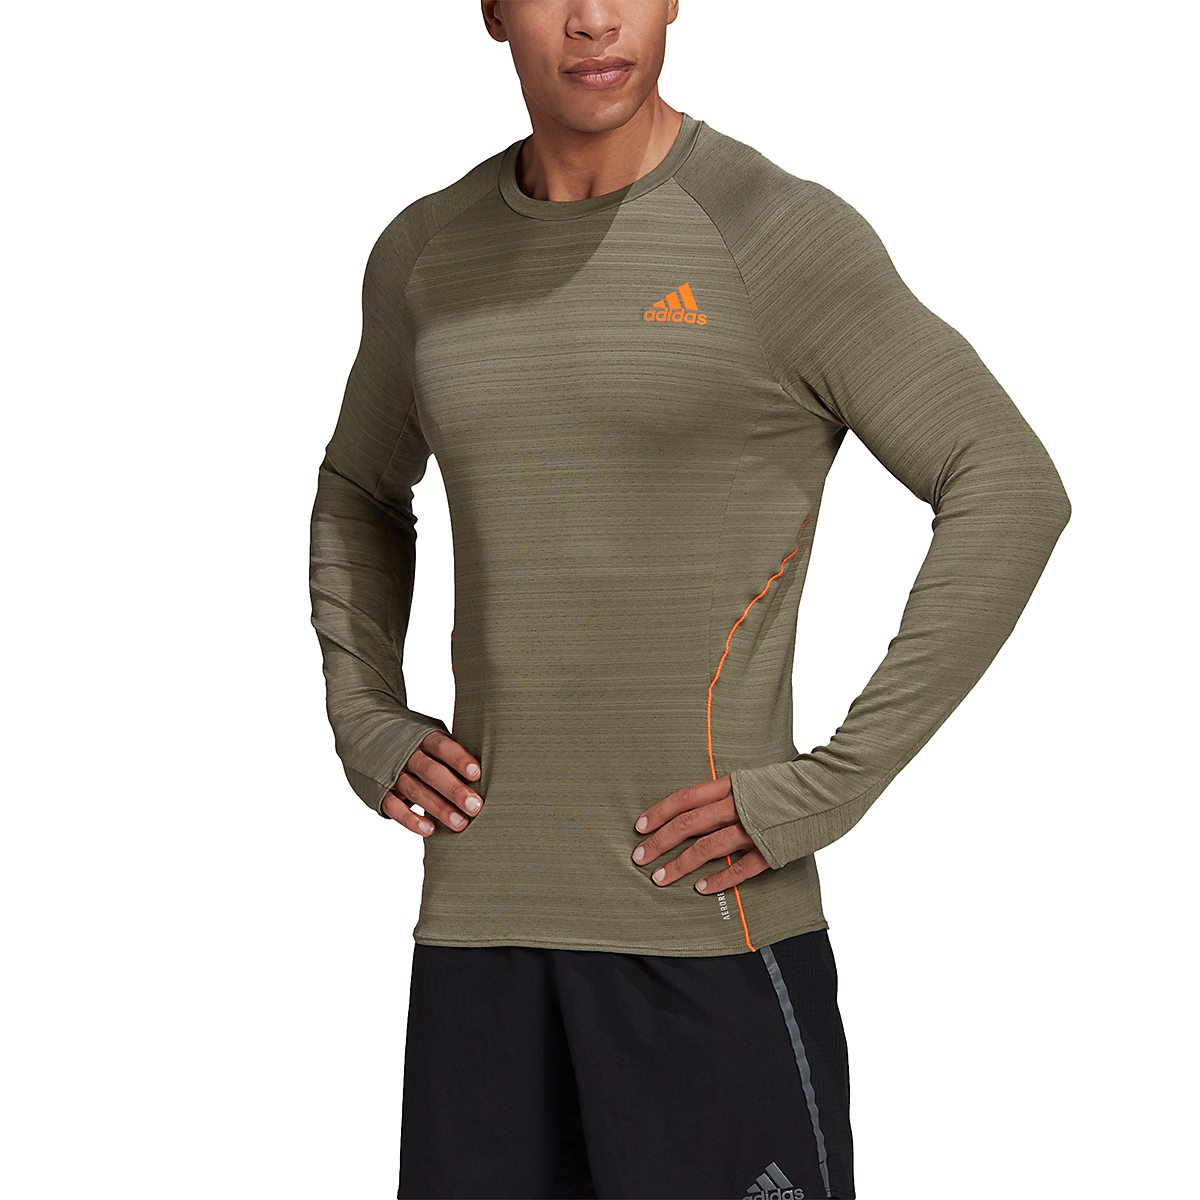 Men's Adidas Runner Long Sleeve Tee - Color: Legacy Green - Size: S, Legacy Green, large, image 1